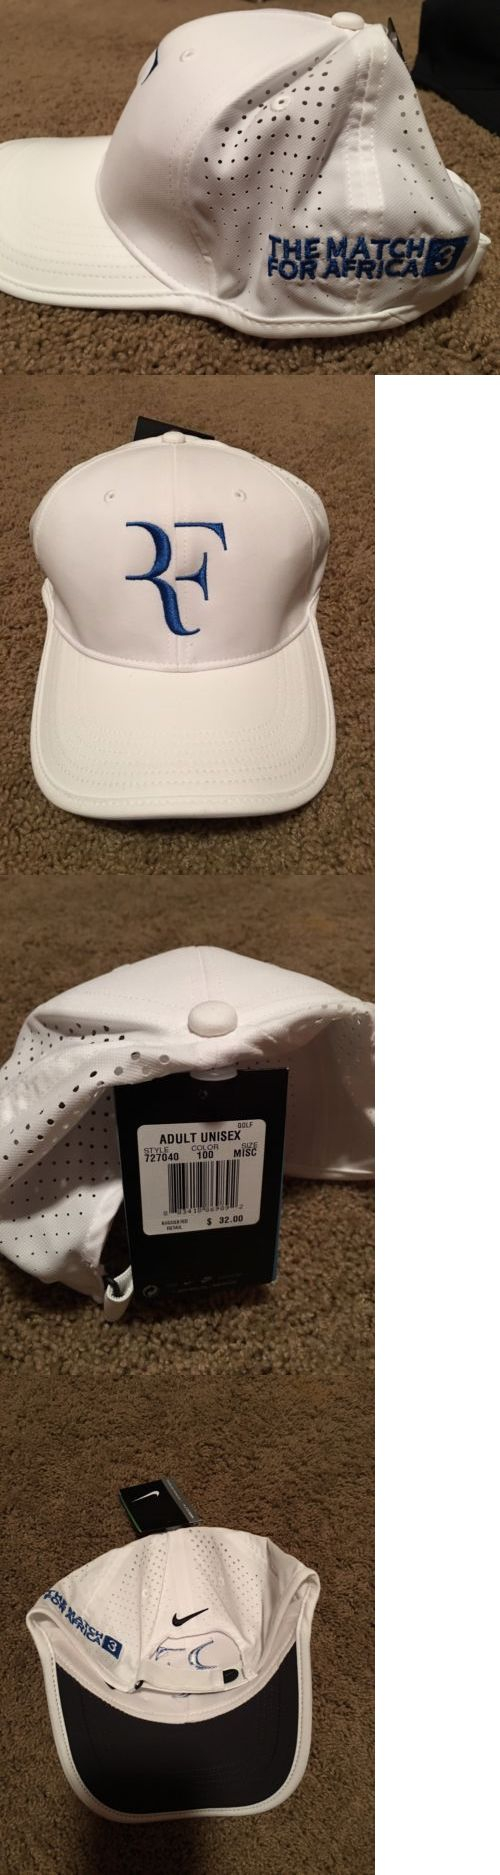 Hats and Headwear 159160: New Nike Federer Rf Match For Africa 3 Hat Cap -> BUY IT NOW ONLY: $235 on eBay!